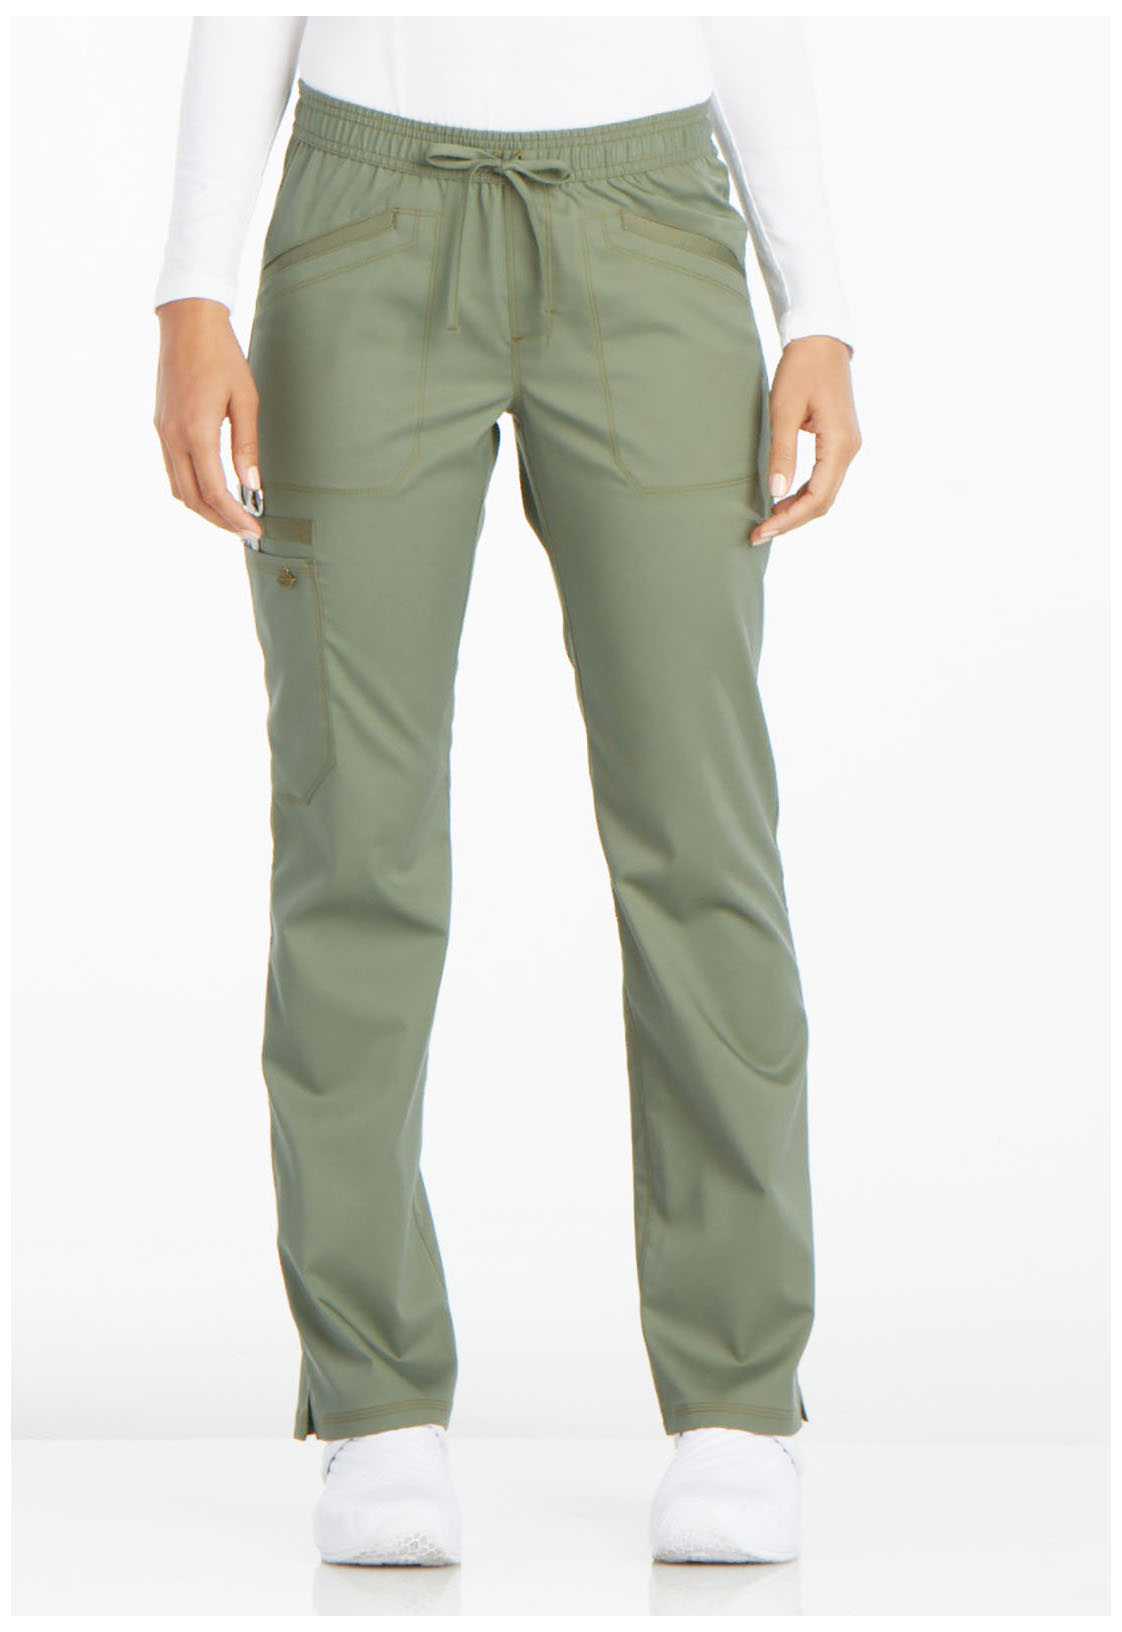 ab6f8dcc965 Essence Mid Rise Straight Leg Drawstring Pant in Olive DK106-OLV ...